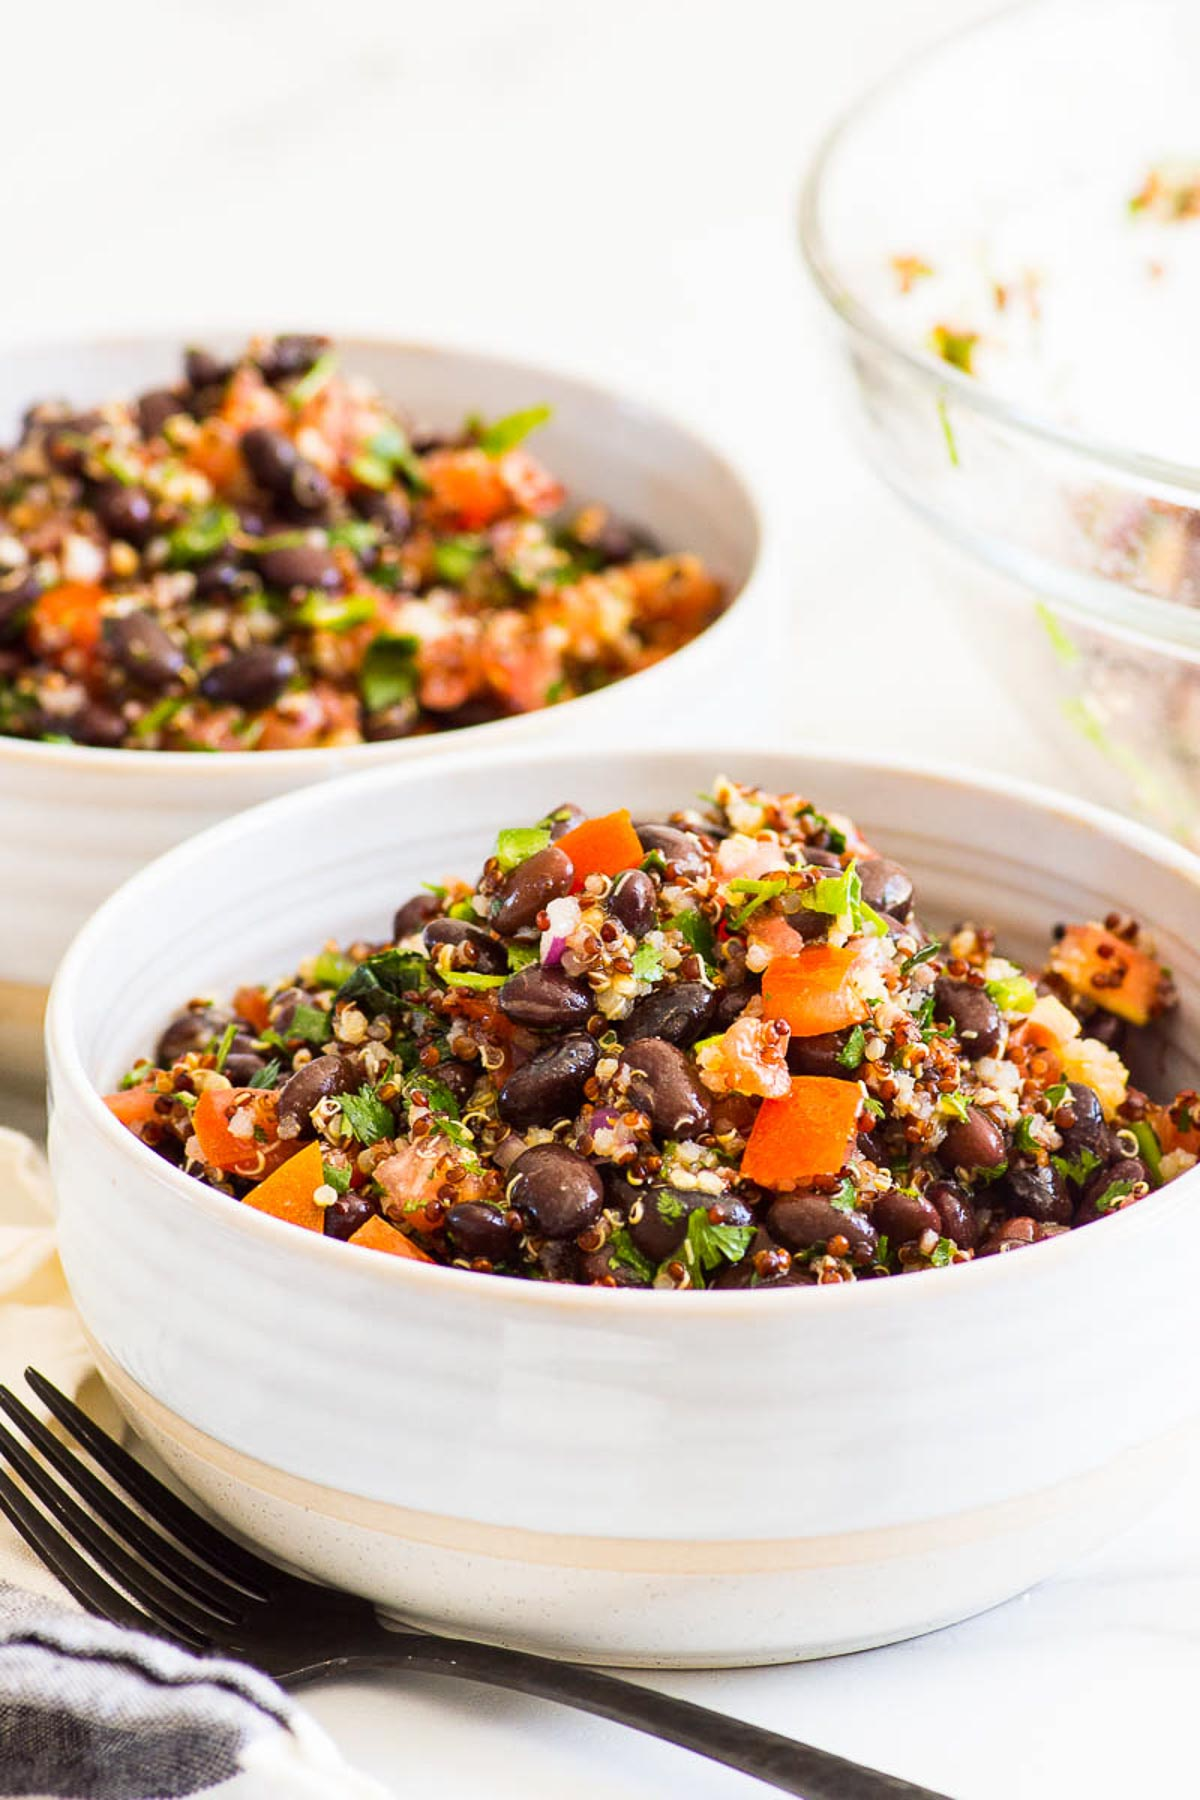 quinoa black bean salad in bowls with forks